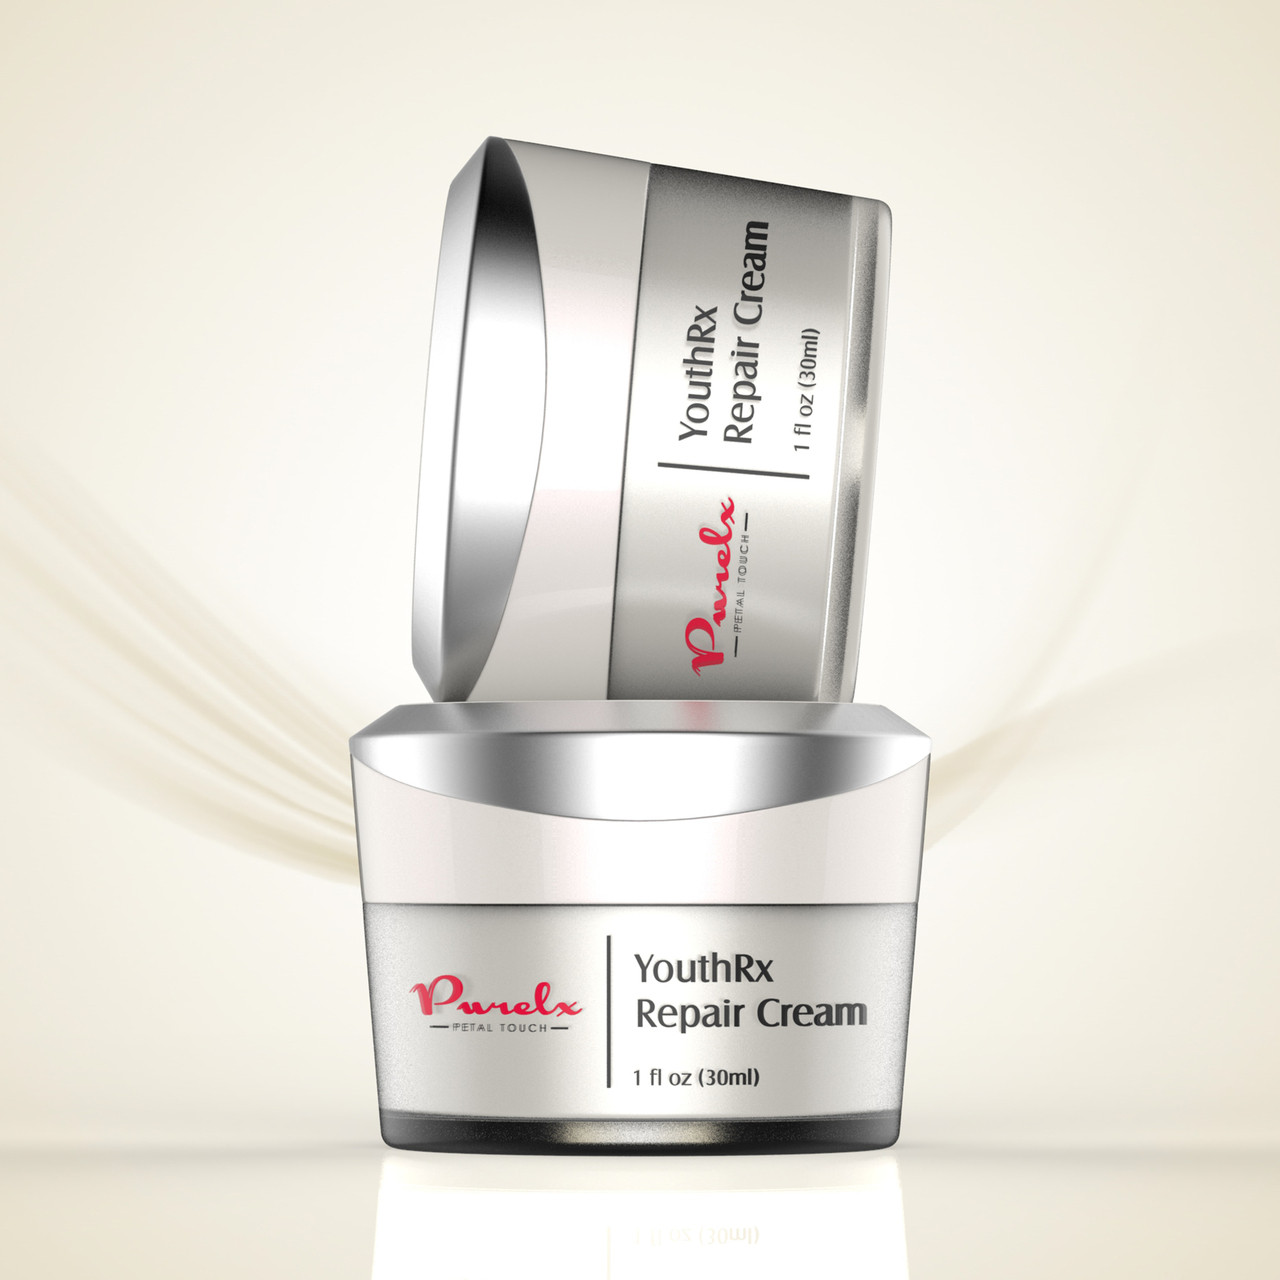 YouthRx Repair Cream - repairs, restores and moisturizes your face while you sleep.